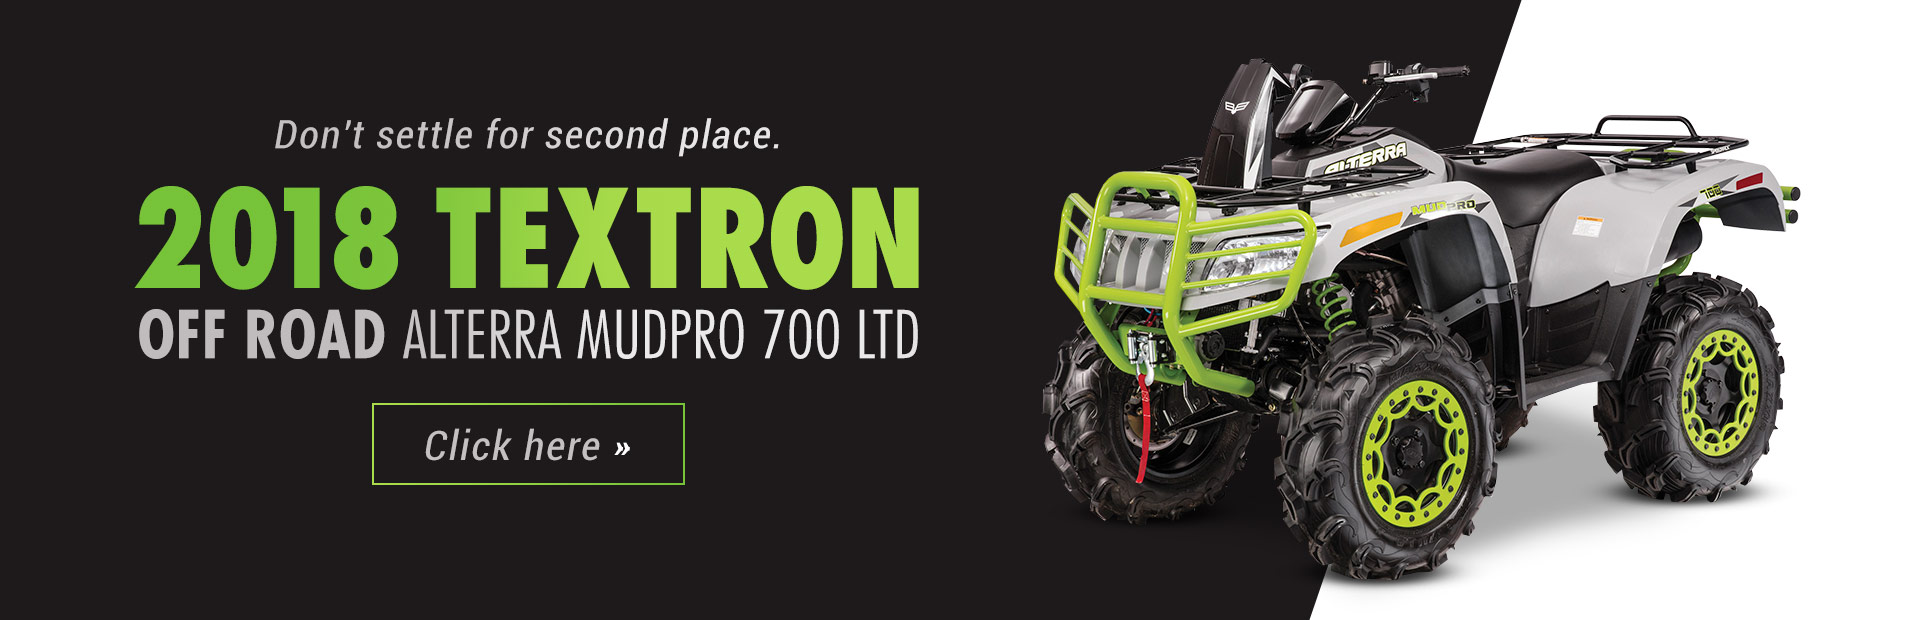 2018 Textron Off Road Alterra MudPro 700 LTD: Click here for details!